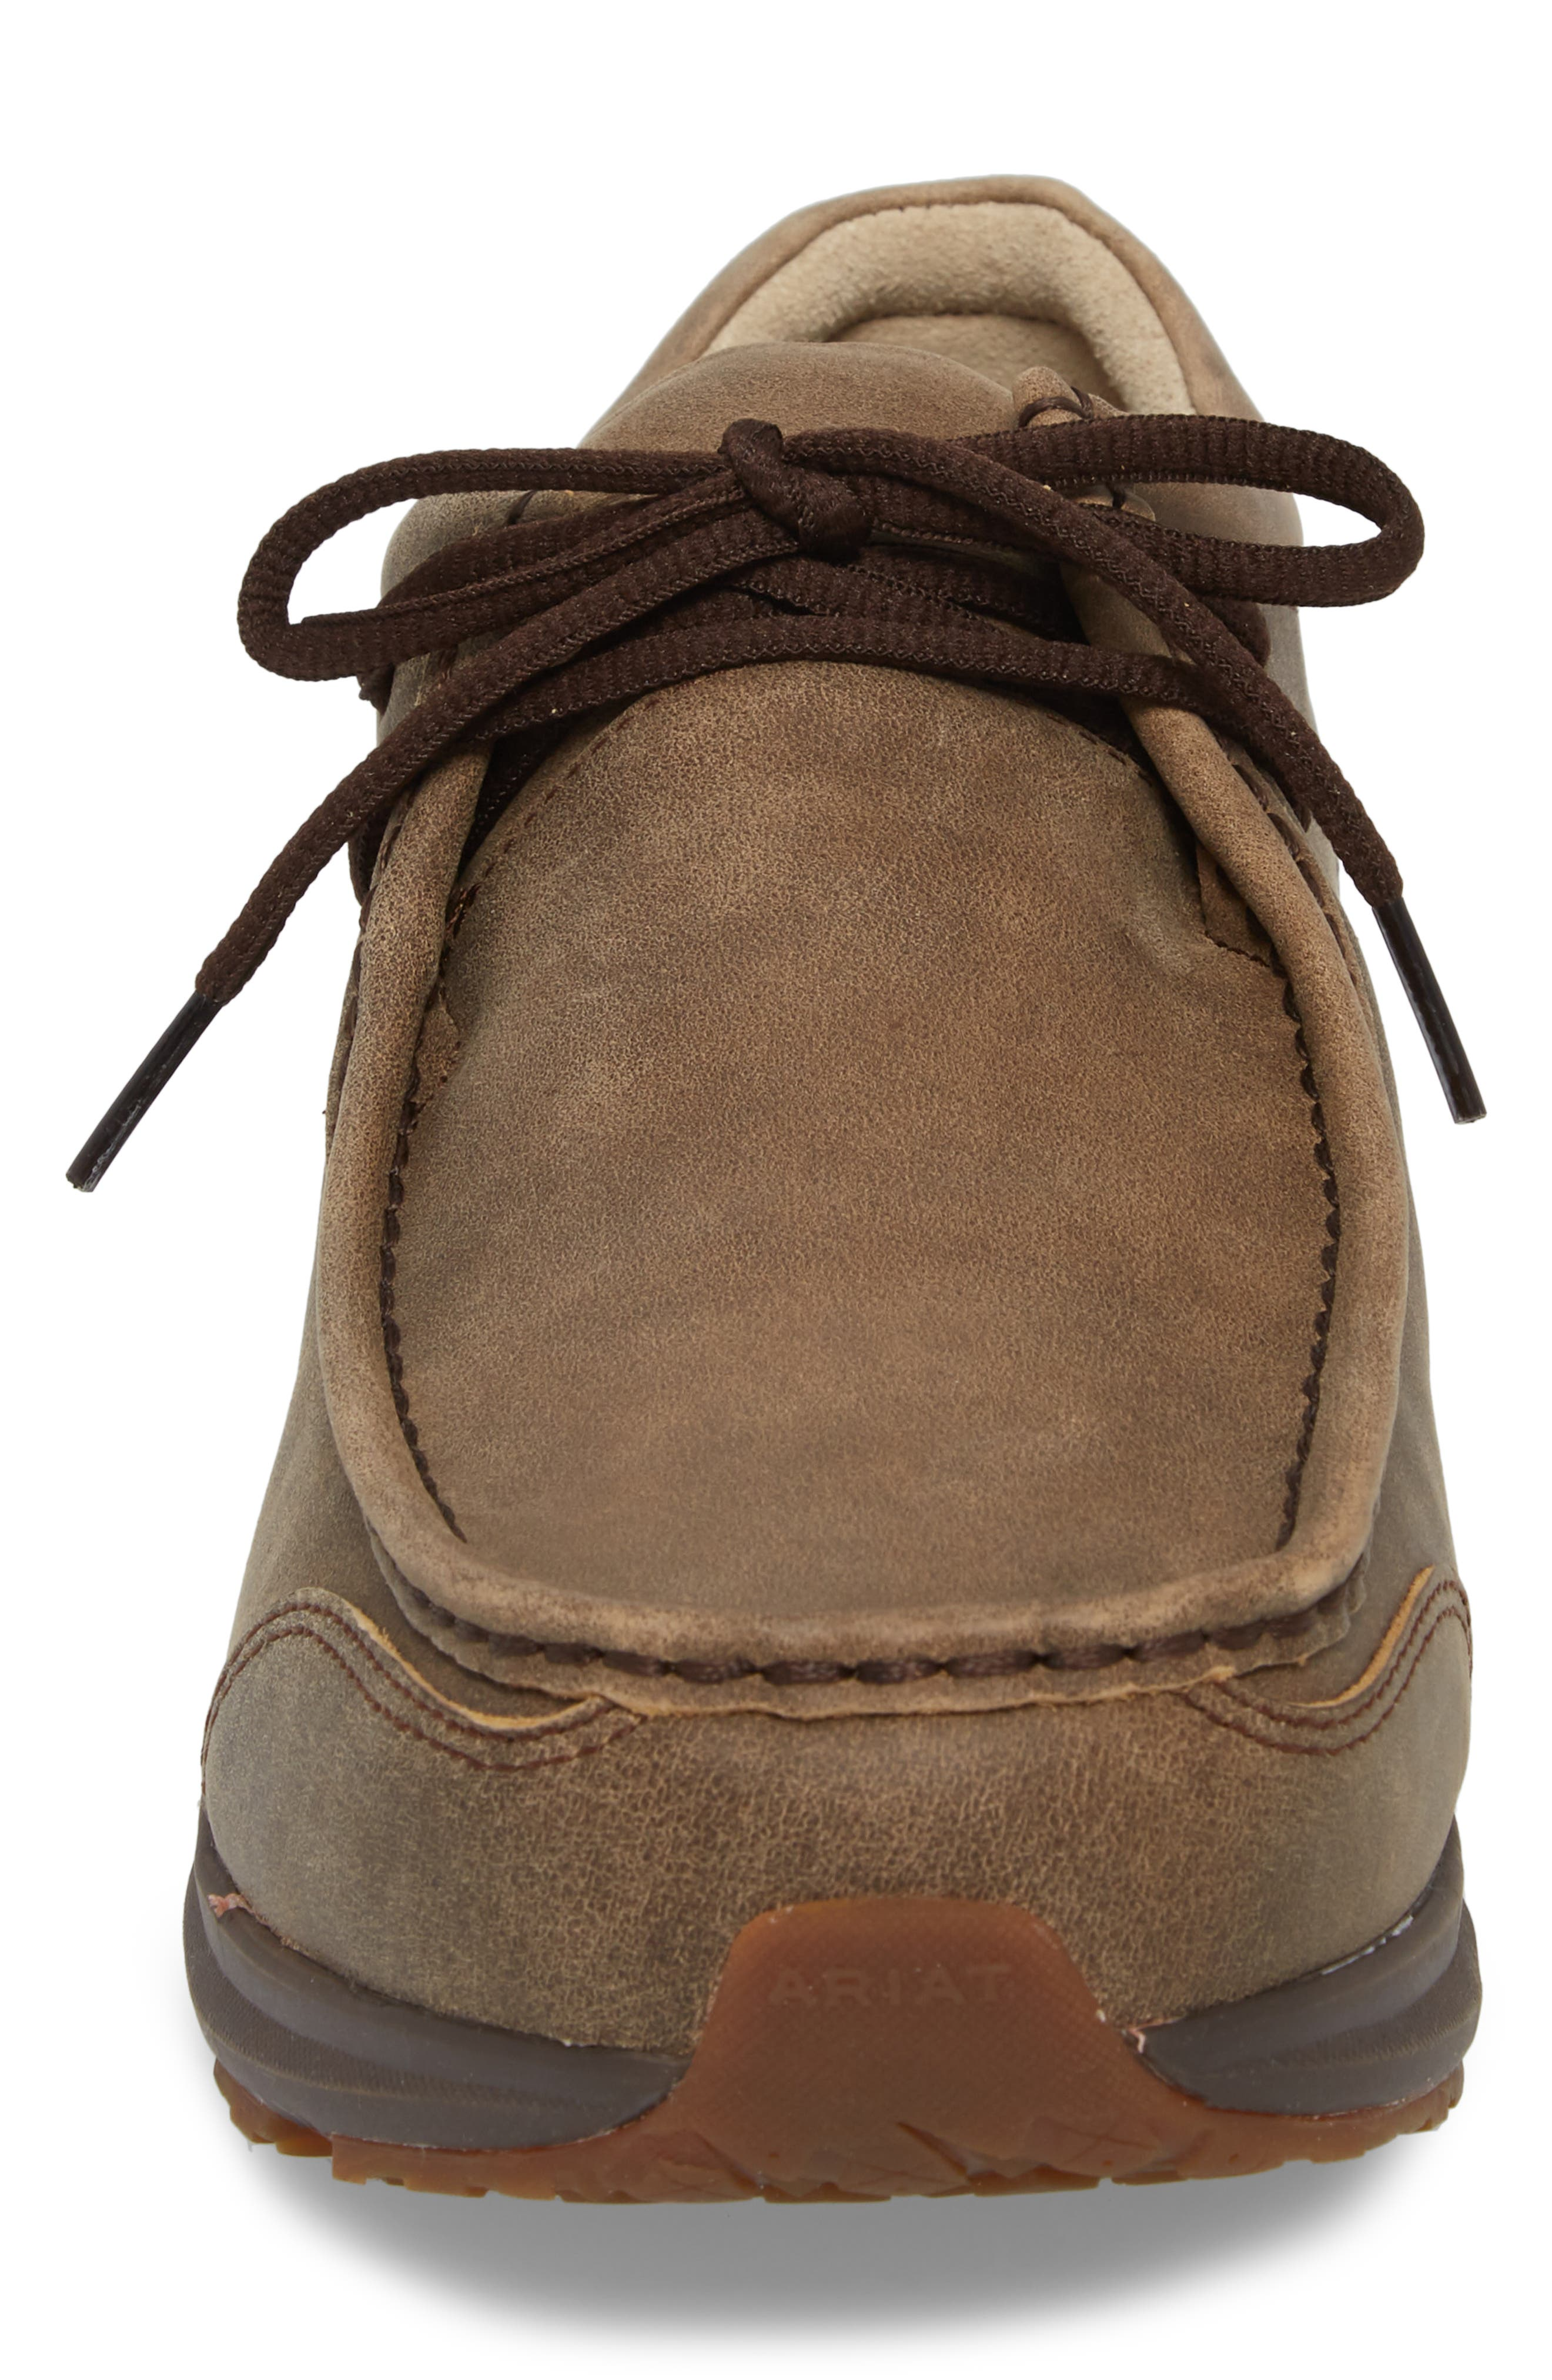 Spitfire Moc Toe Lace-Up,                             Alternate thumbnail 4, color,                             BROWN LEATHER